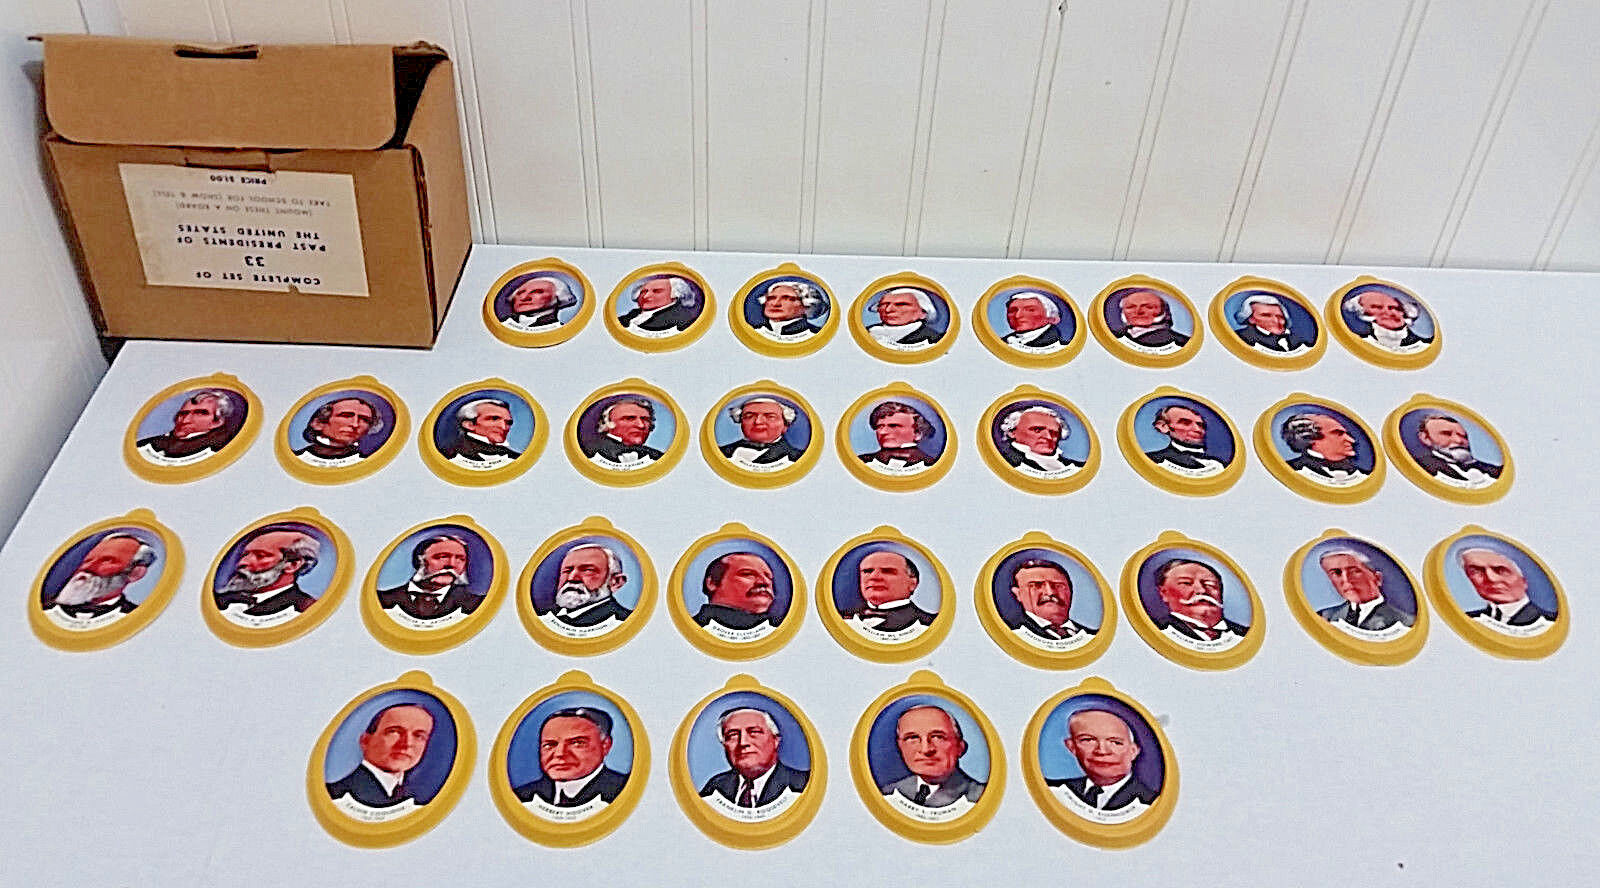 RARE Vtg 1950s Nabisco Cereal Premiums Complete Set of 33 US Presidents in Box